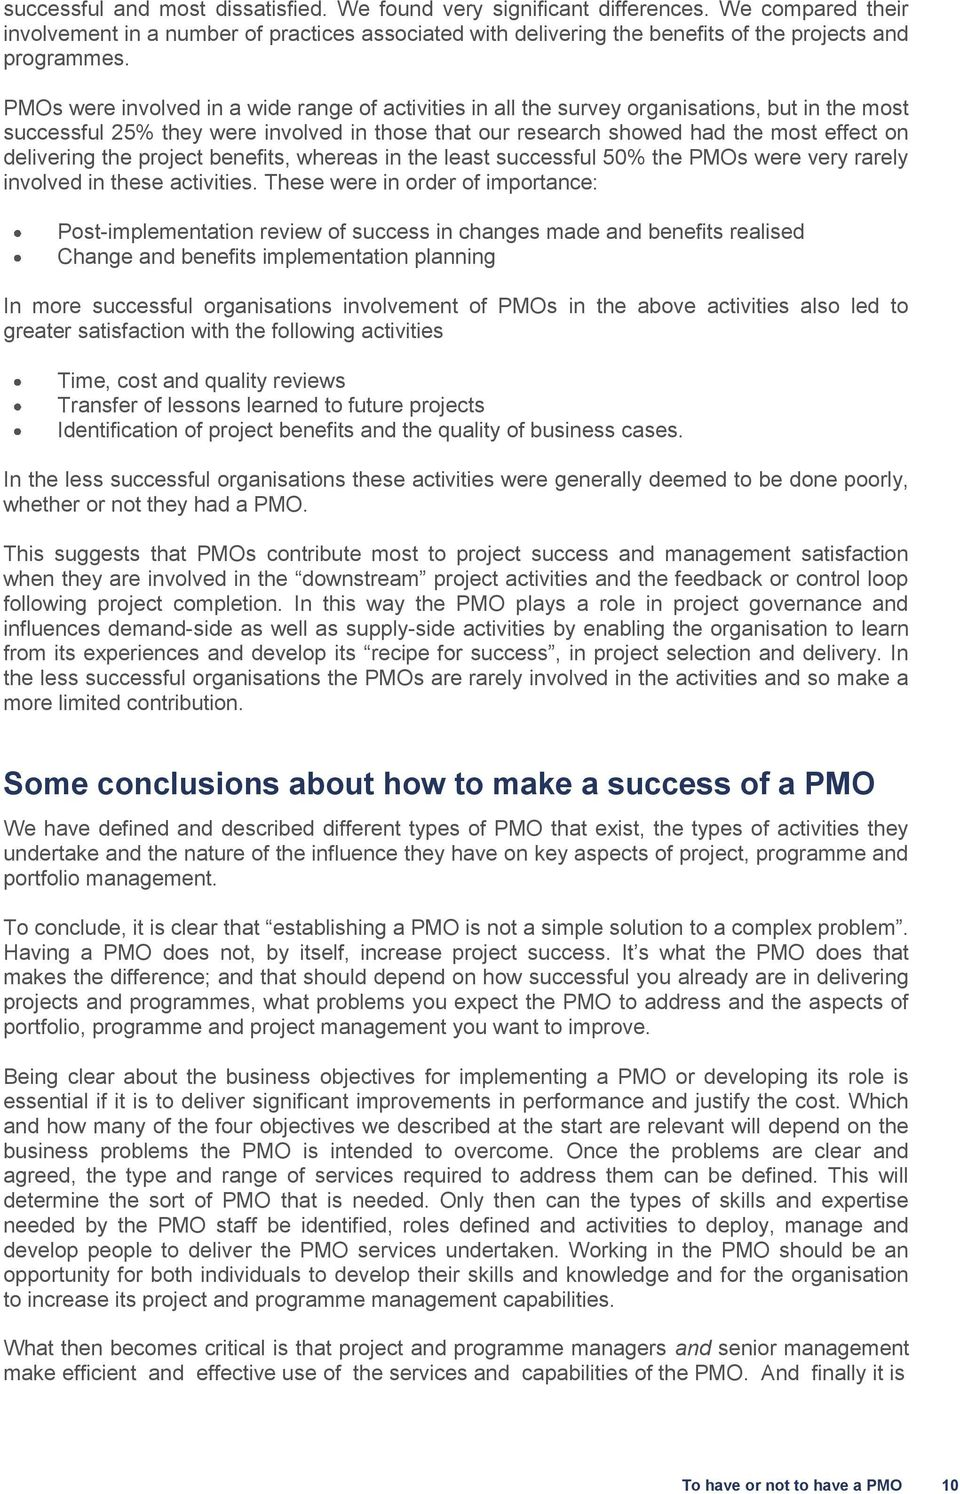 the project benefits, whereas in the least successful 50% the PMOs were very rarely involved in these activities.